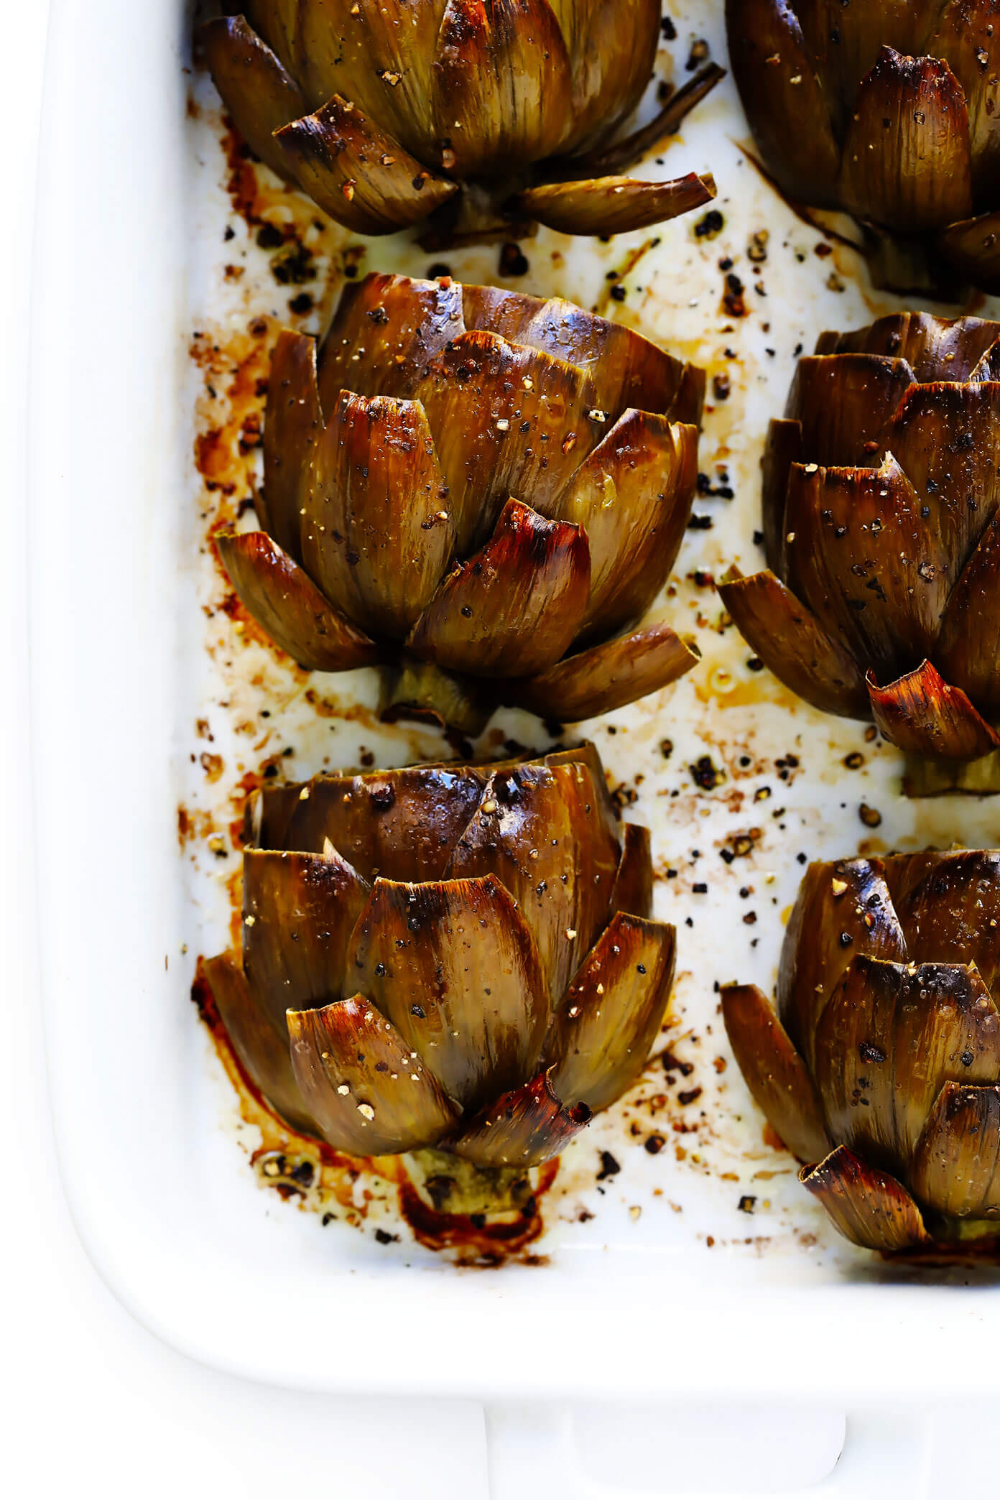 The Most Amazing Roasted Artichokes | Gimme Some Oven